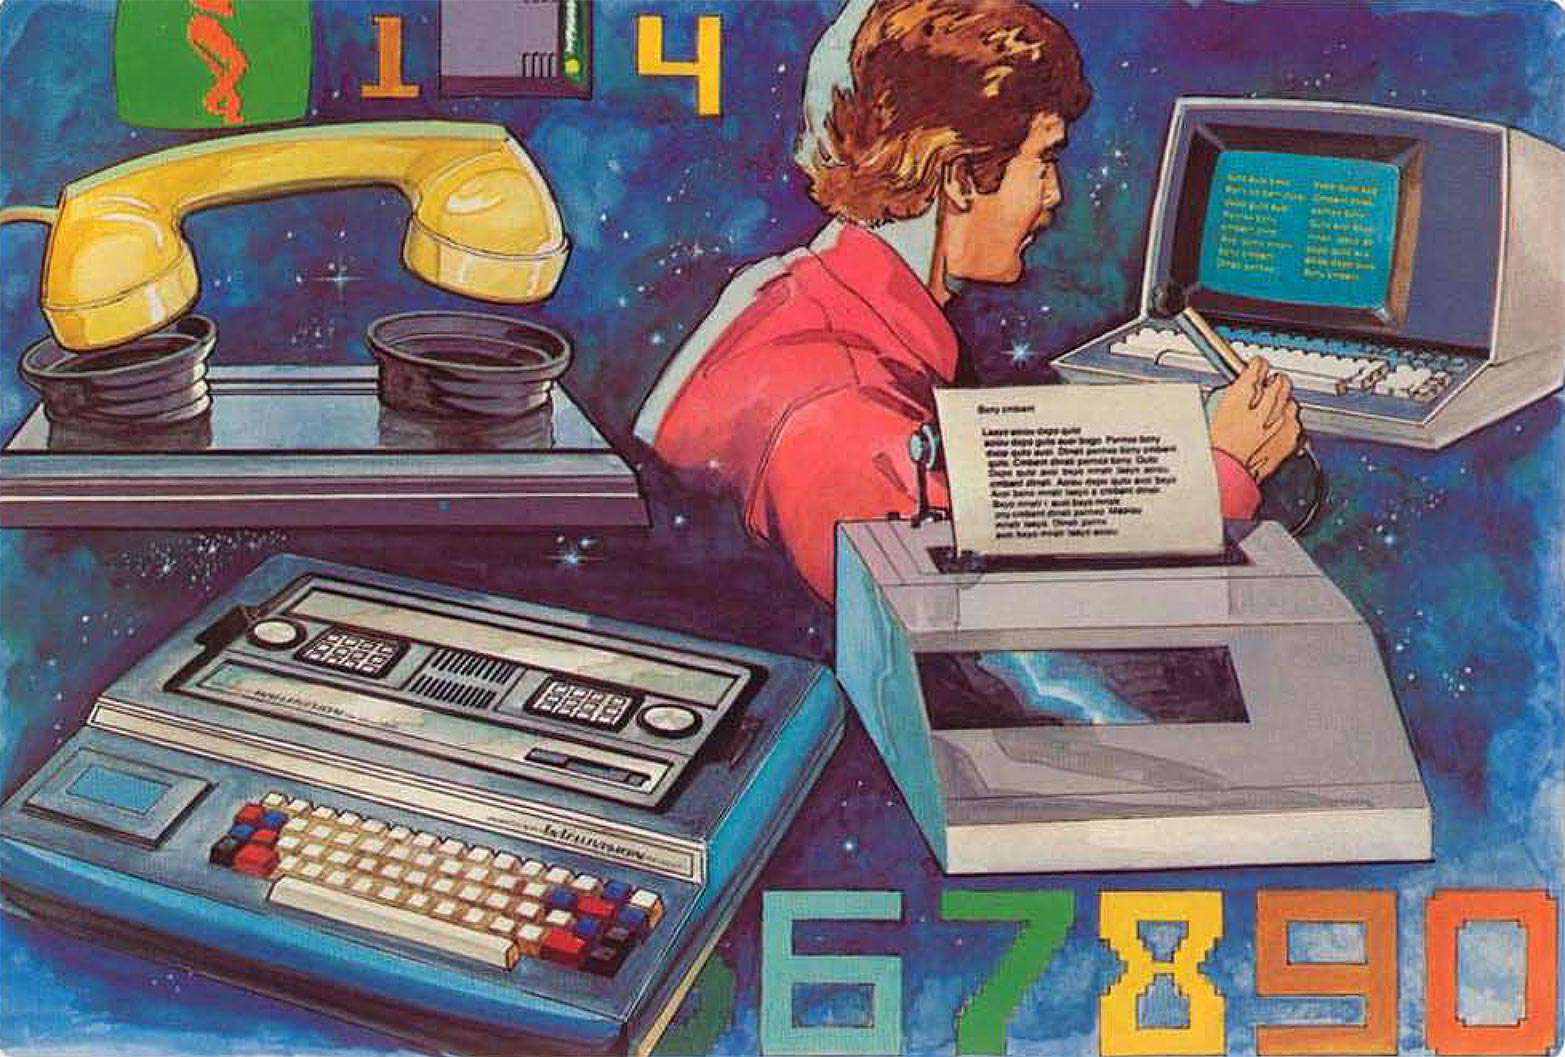 Artist rendition of online peripherals for the Mattel Intellivision console